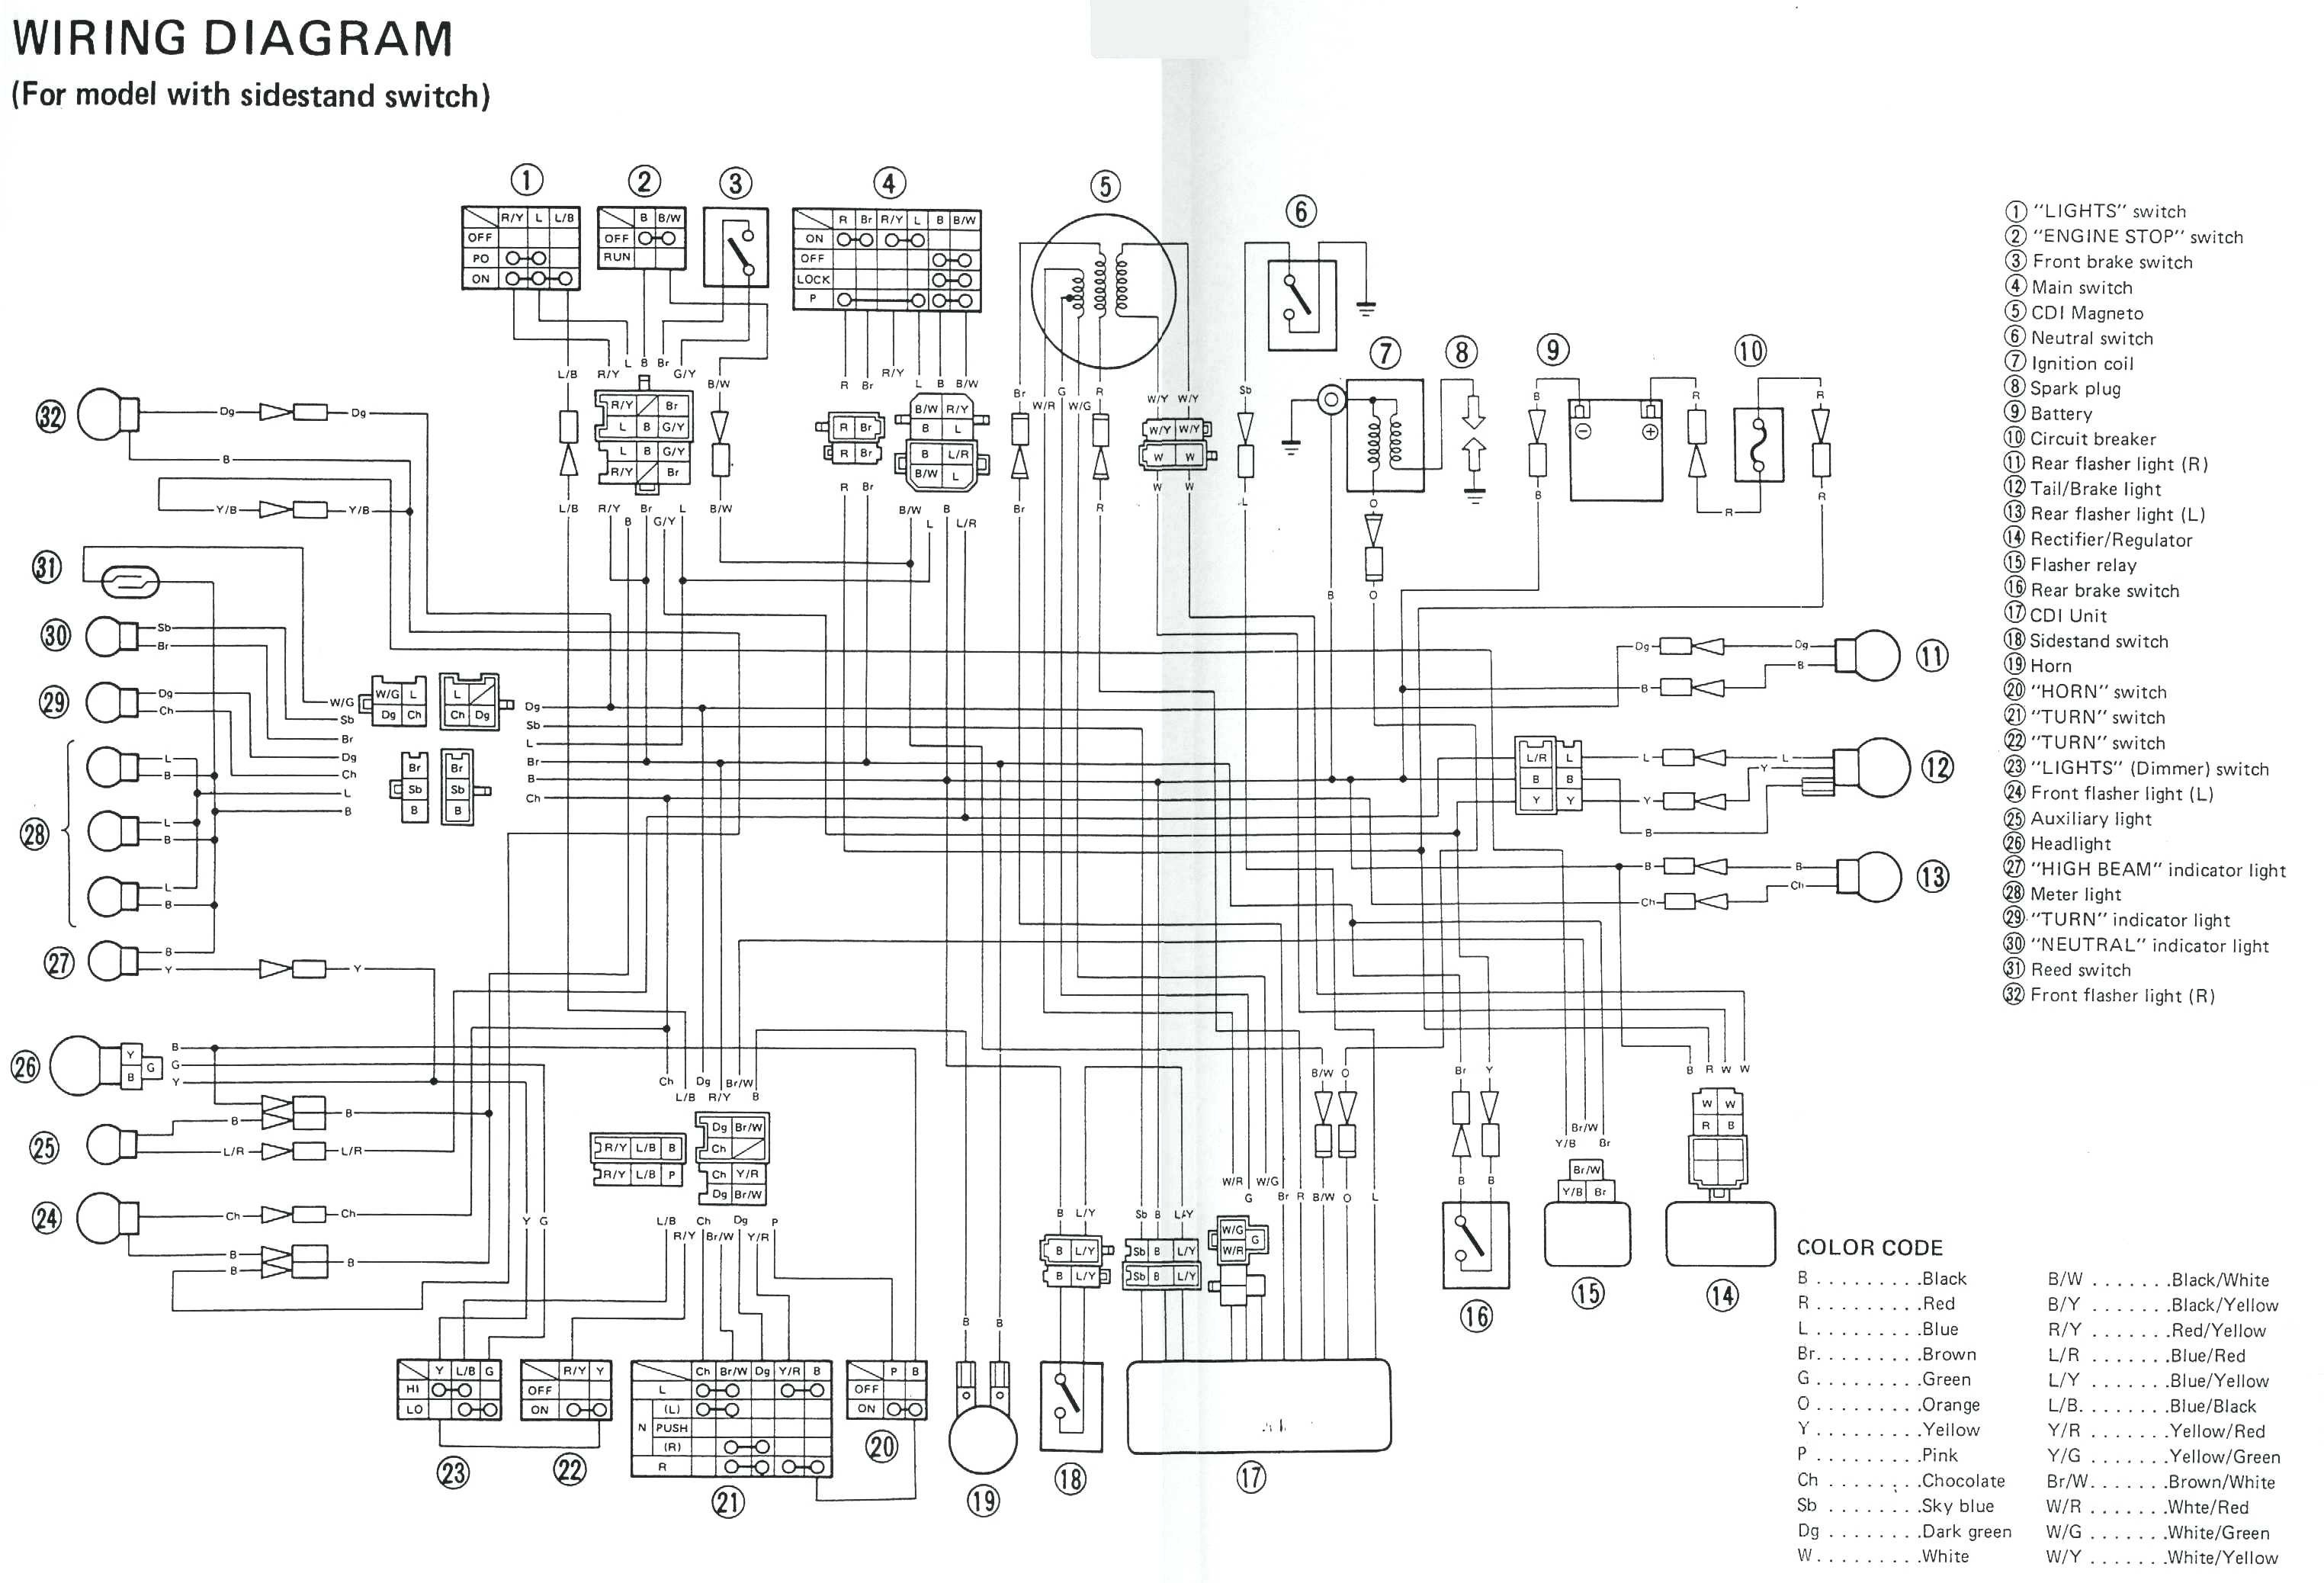 yamaha v star 650 wiring diagram tach | wiring diagram yamaha zeal wiring diagram #4